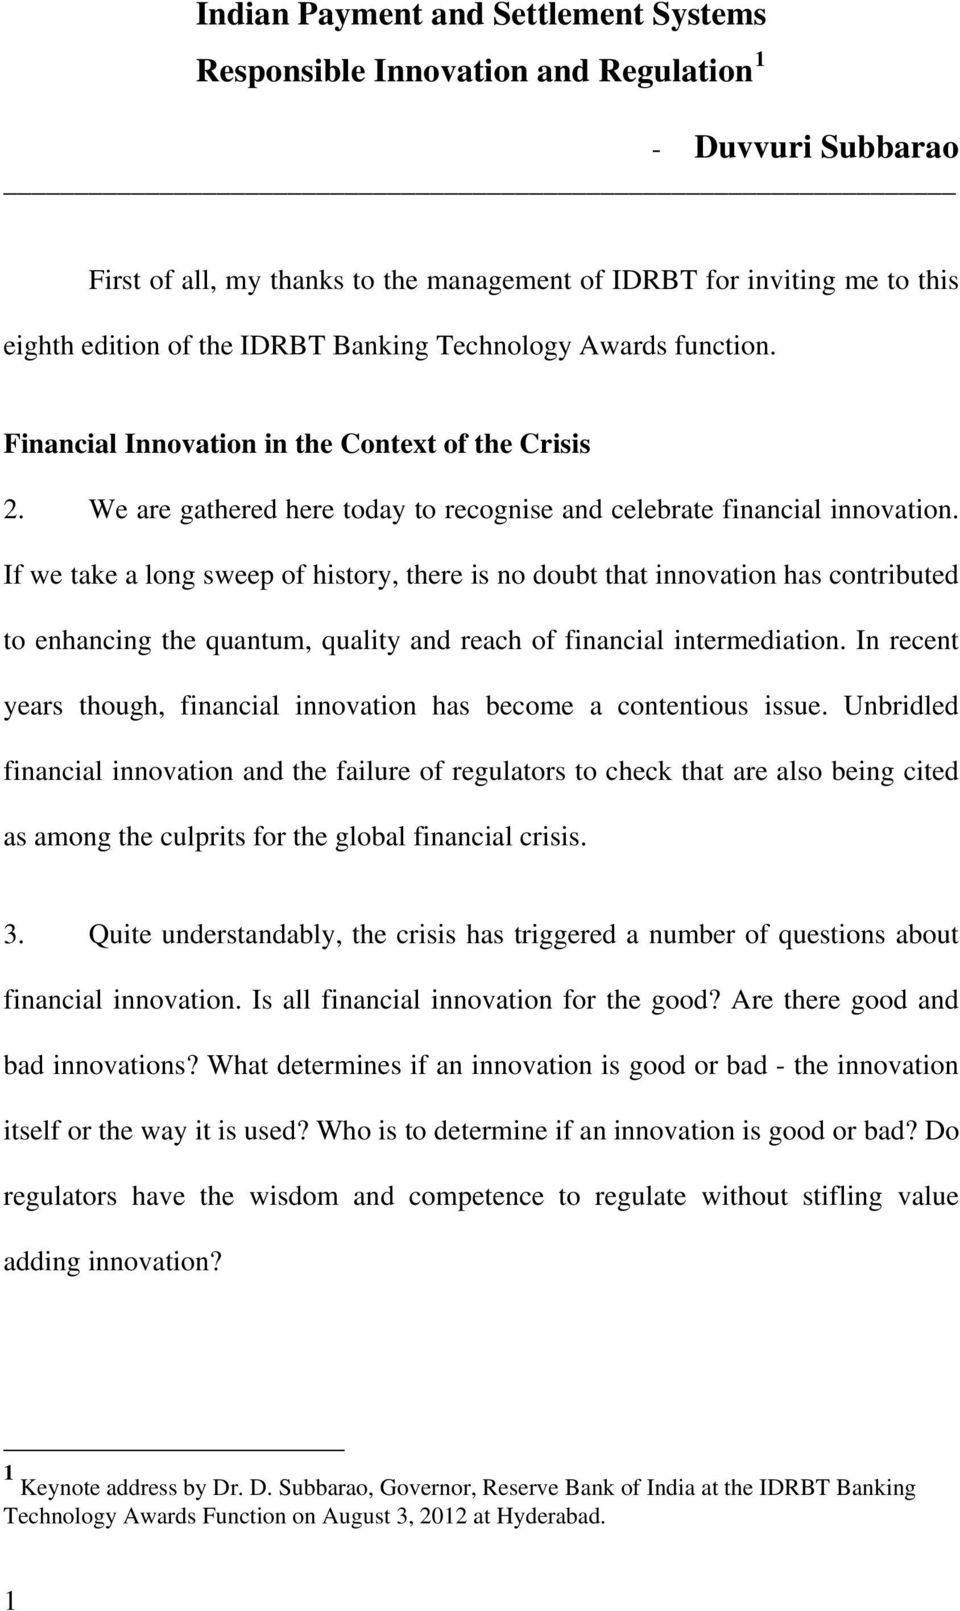 If we take a long sweep of history, there is no doubt that innovation has contributed to enhancing the quantum, quality and reach of financial intermediation.